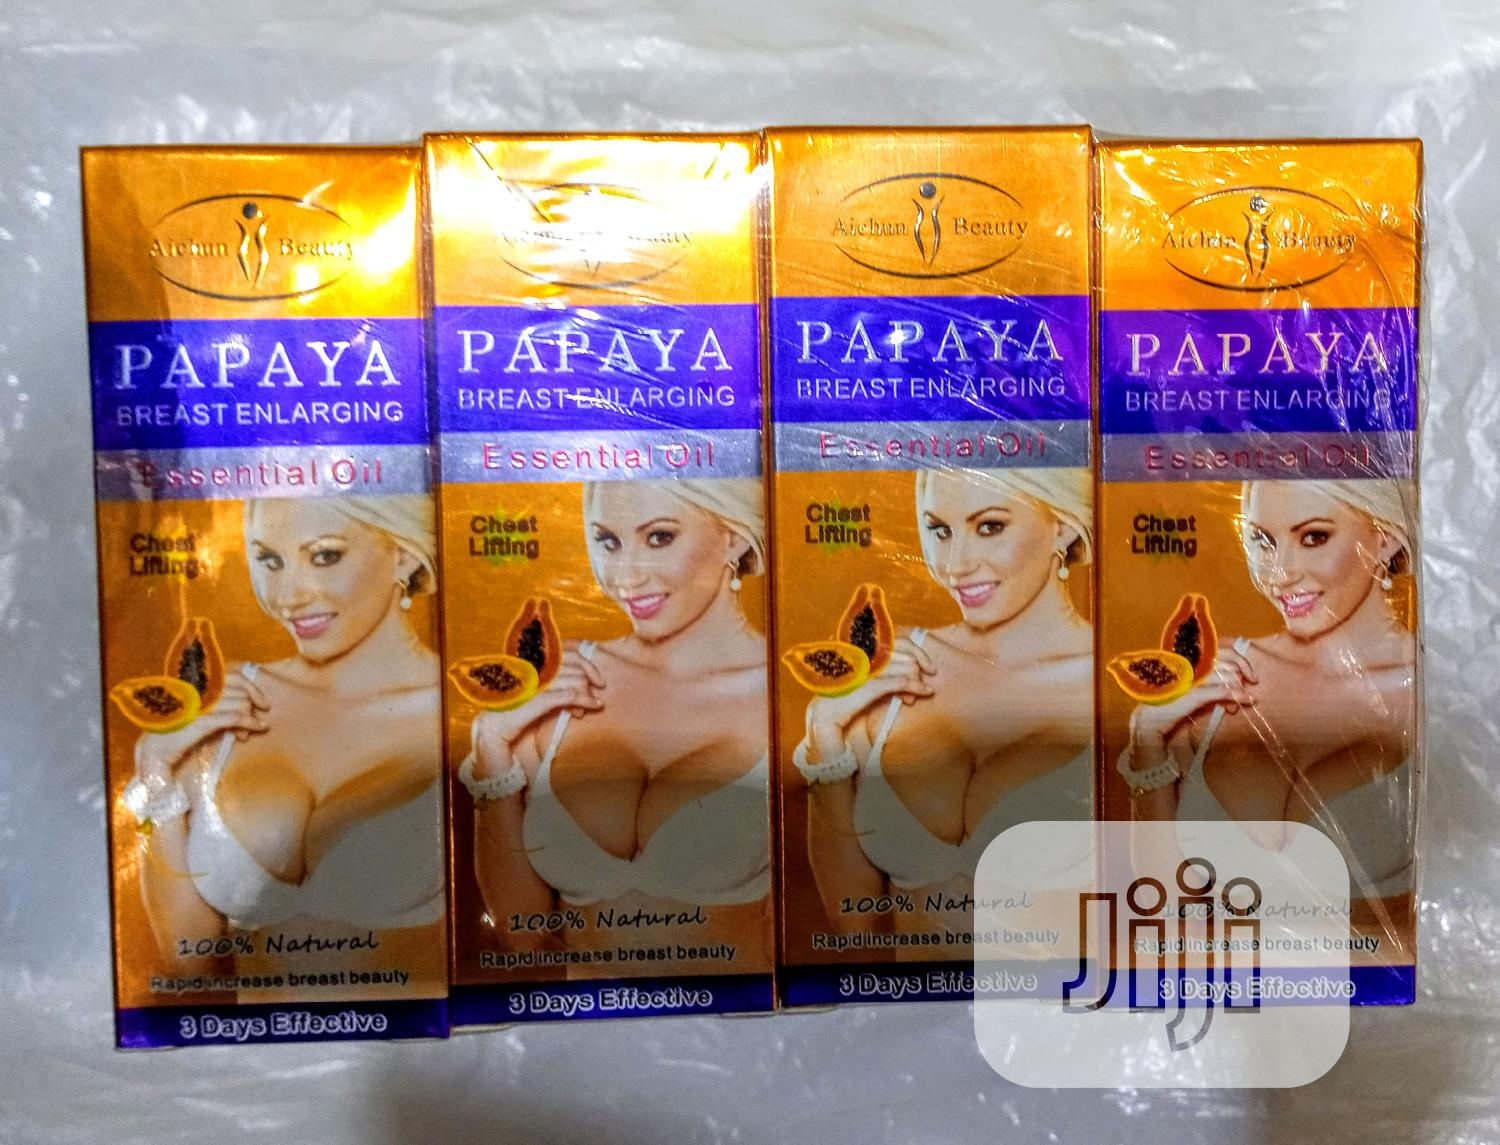 Papaya Breast Firming and Tightening Oil